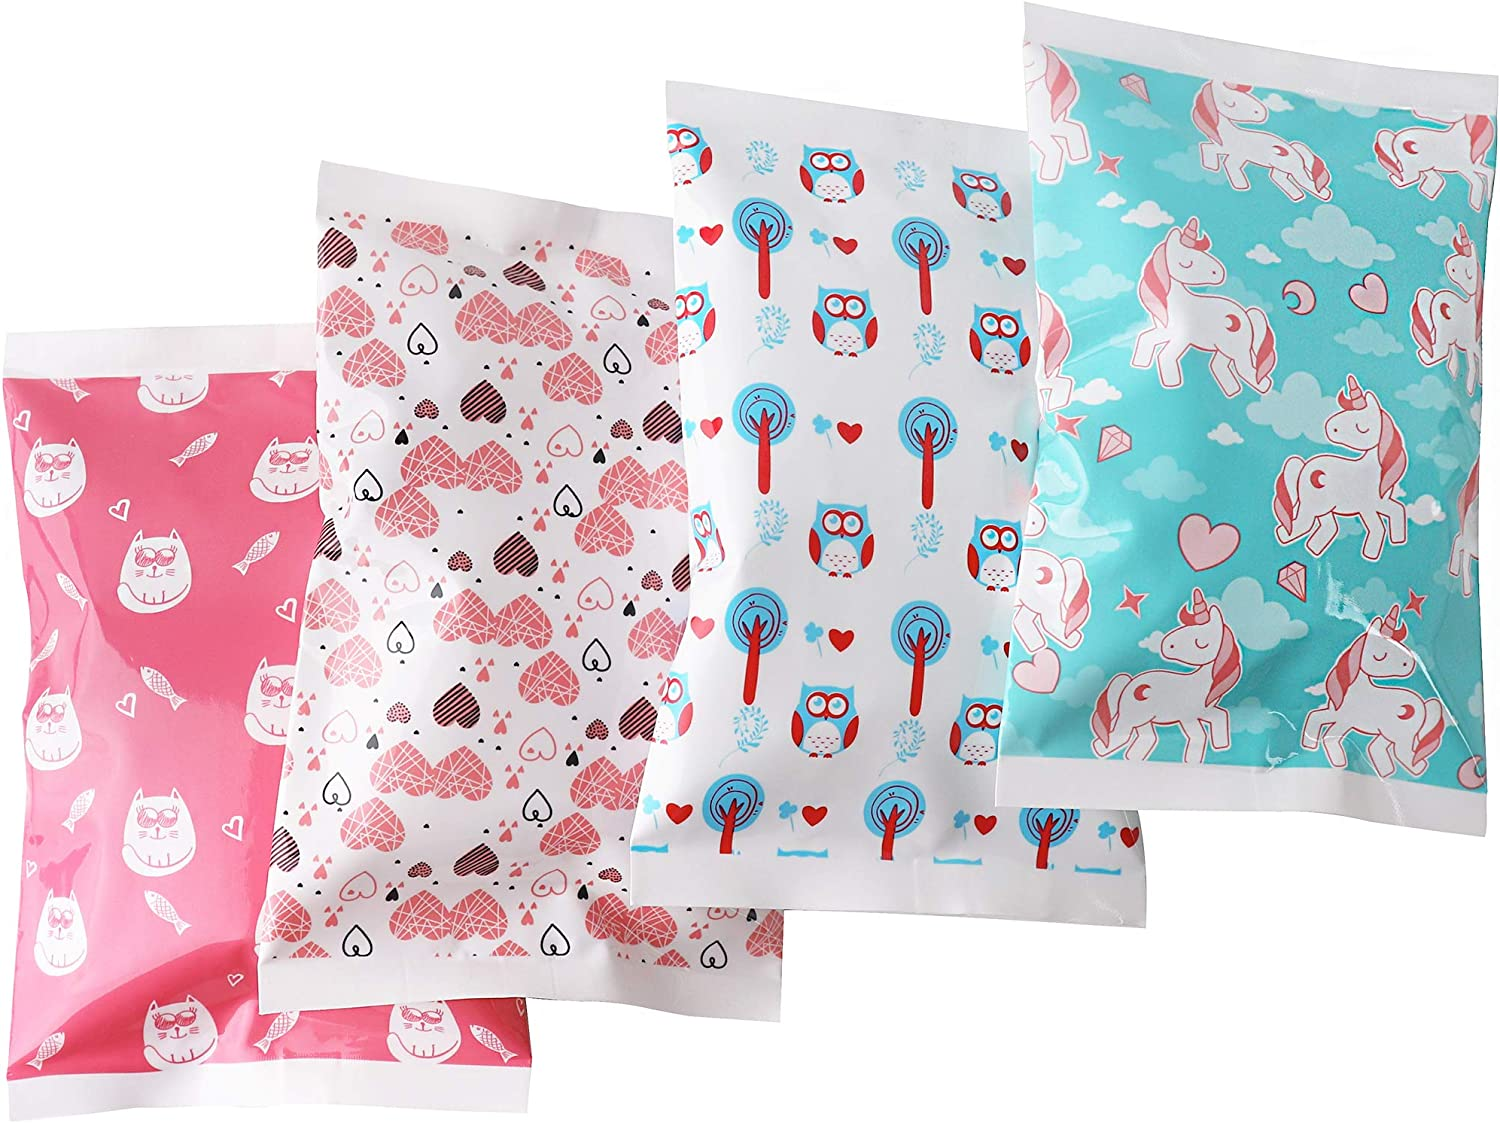 Ice Pack for Lunch Boxes - 4 Reusable Packs - Girls Prints - Keeps Food Cold – Cool Print Bag Designs - Great for Kids or Adults Lunchbox and Cooler